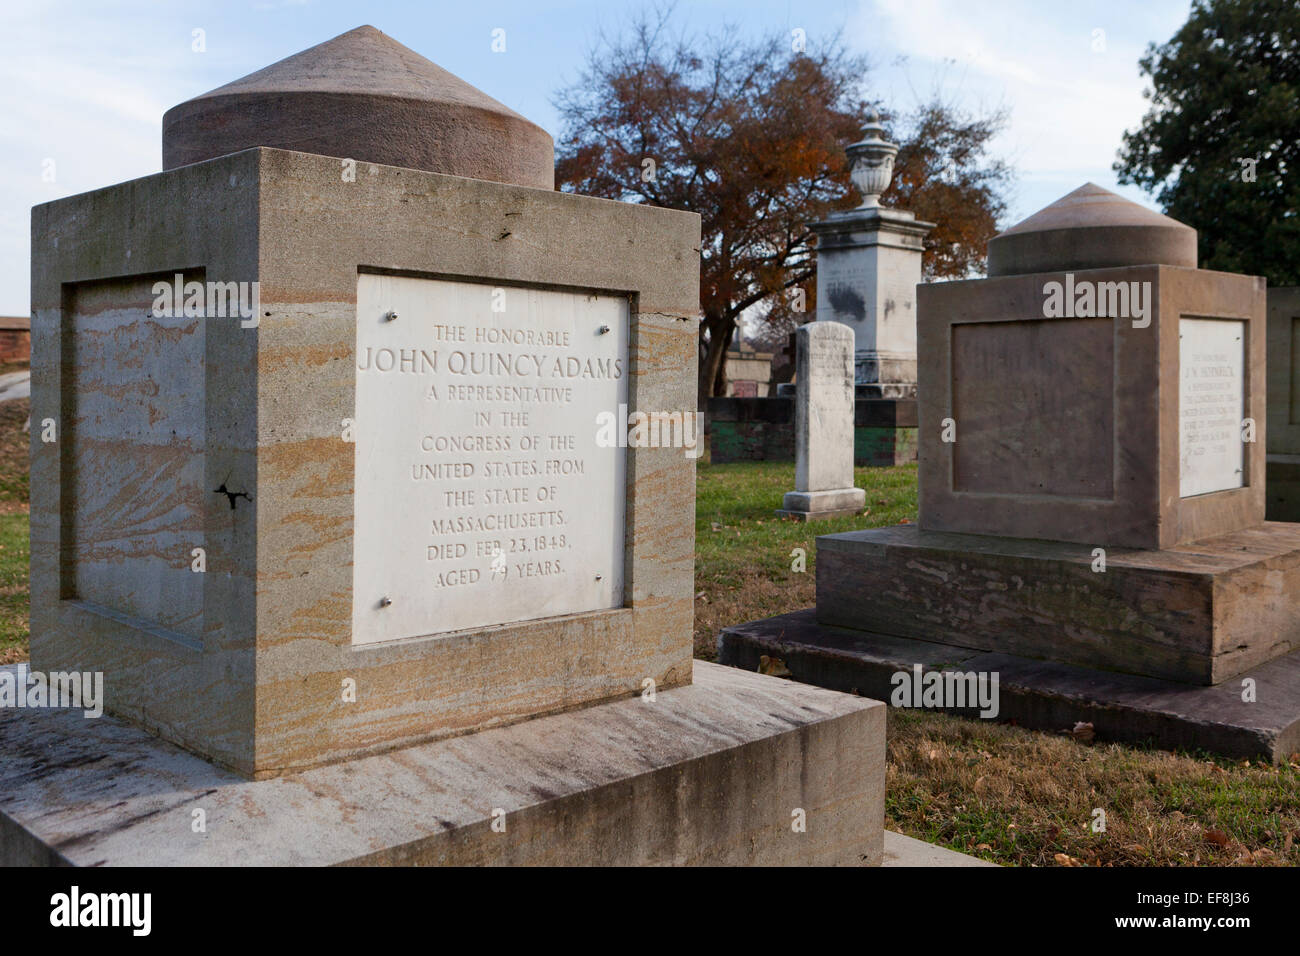 Cenotaph of former US President, John Quincy Adams, in the Congressional Cemetery - Washington, DC USA - Stock Image